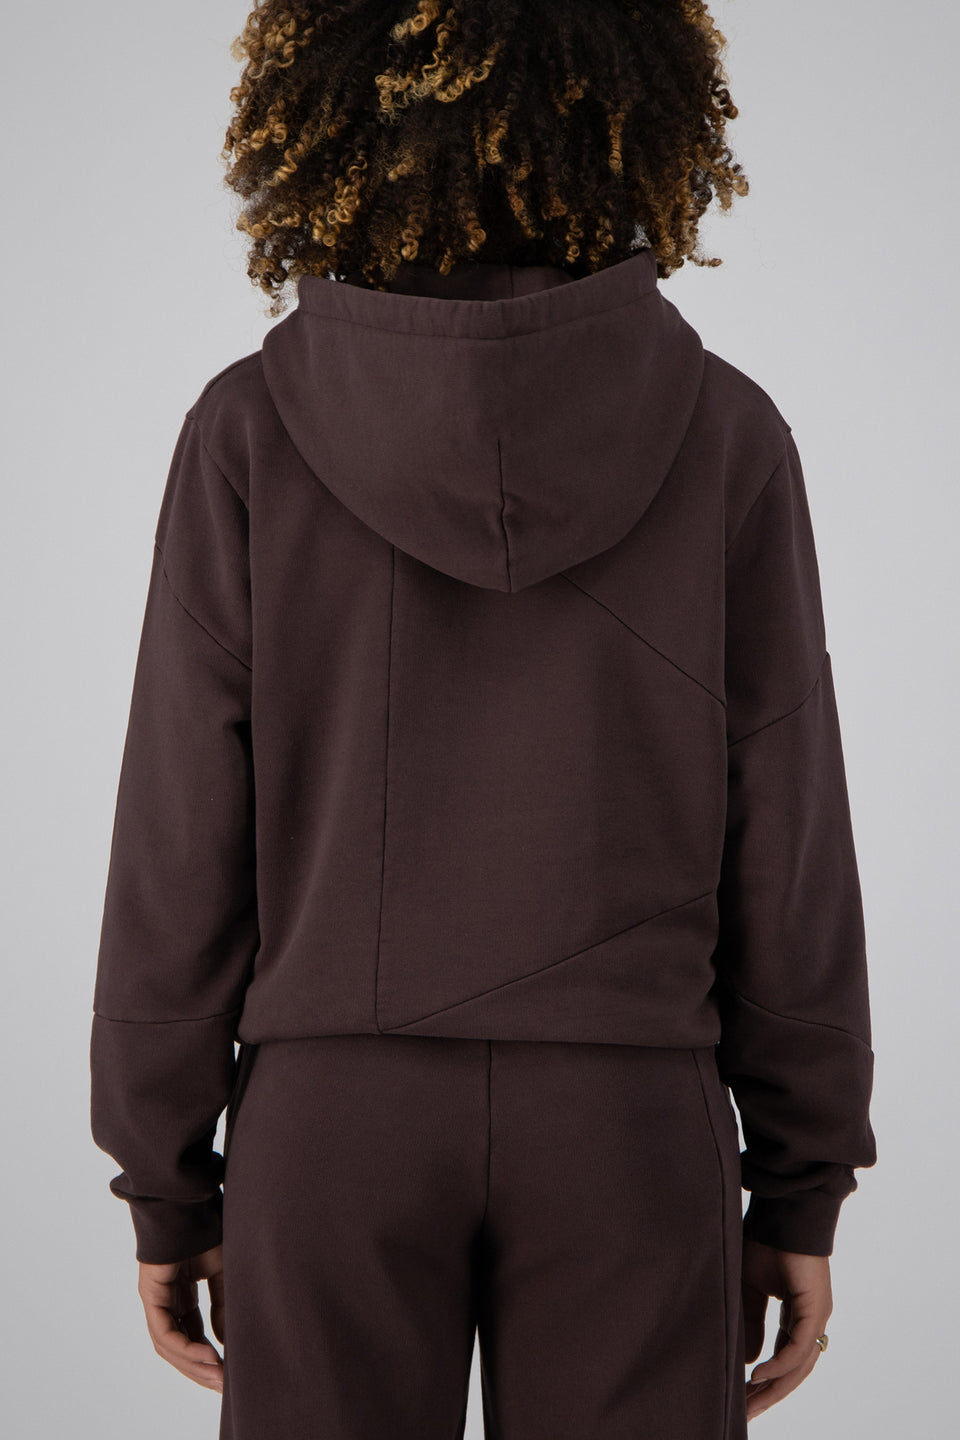 Deconstructed Hoodie Mid-Century Brown